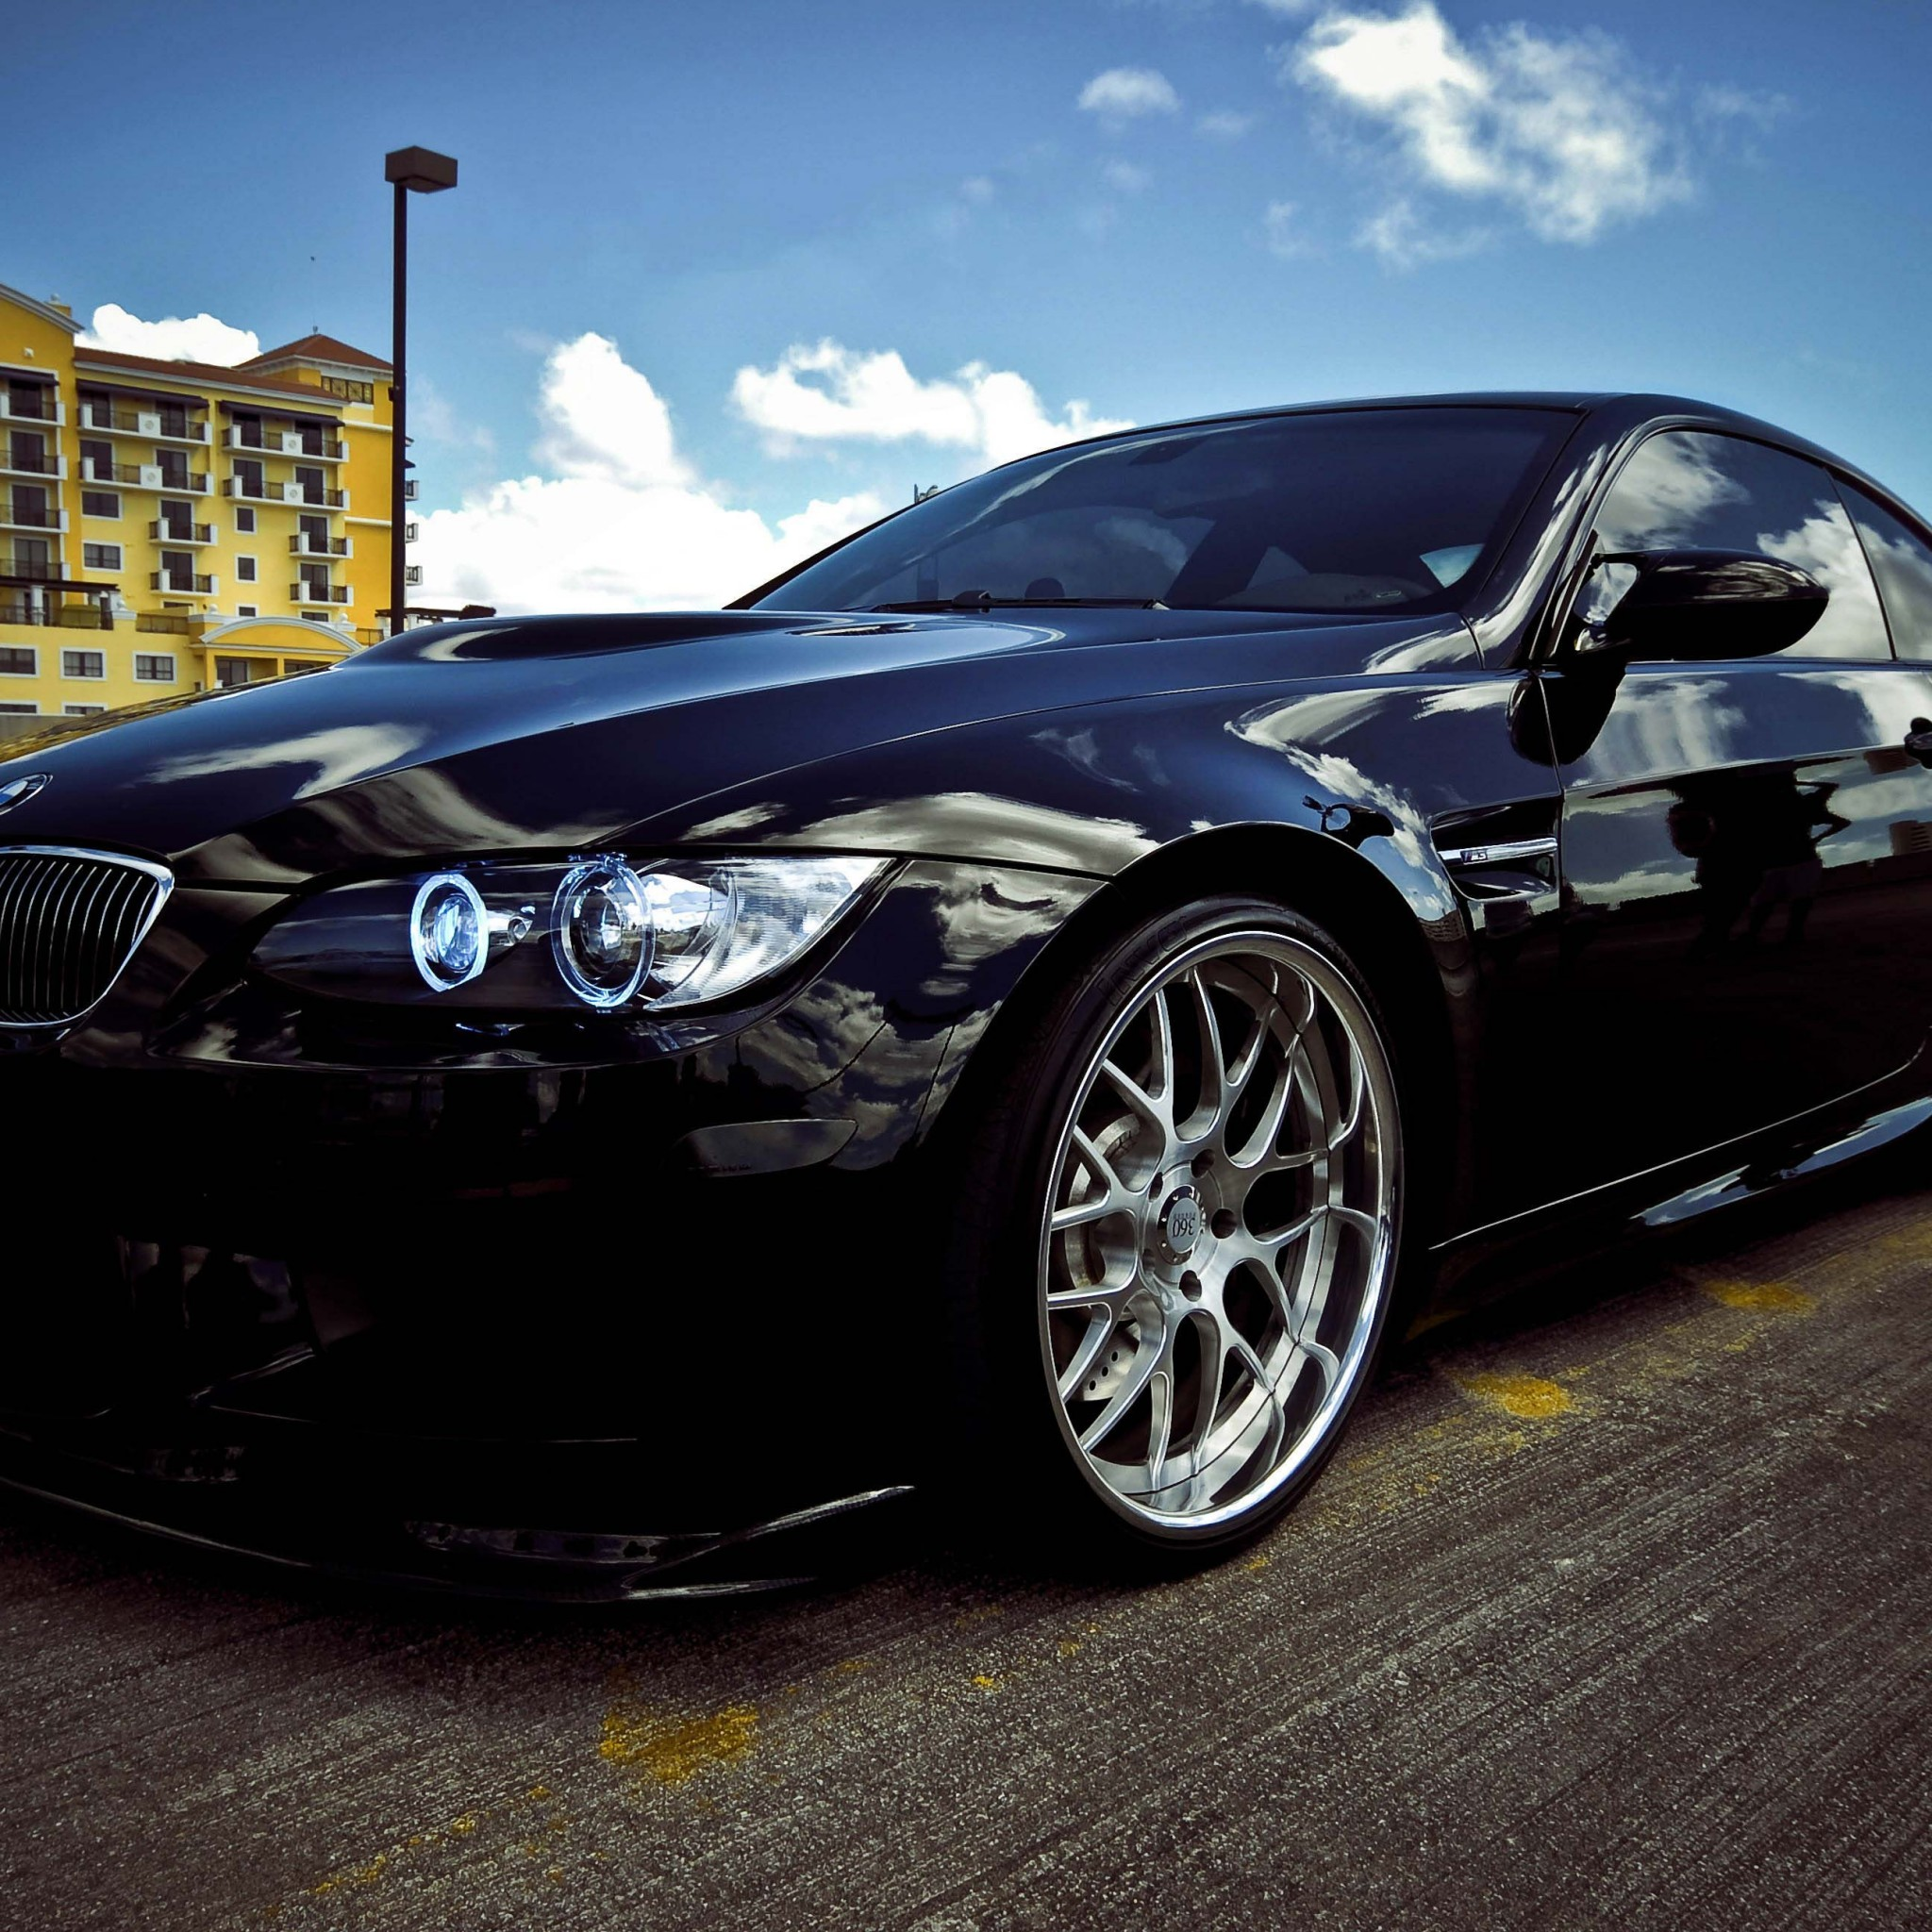 Bmw Car Wallpaper: Bmw New Best 4k Tv 1080p Wallpaper